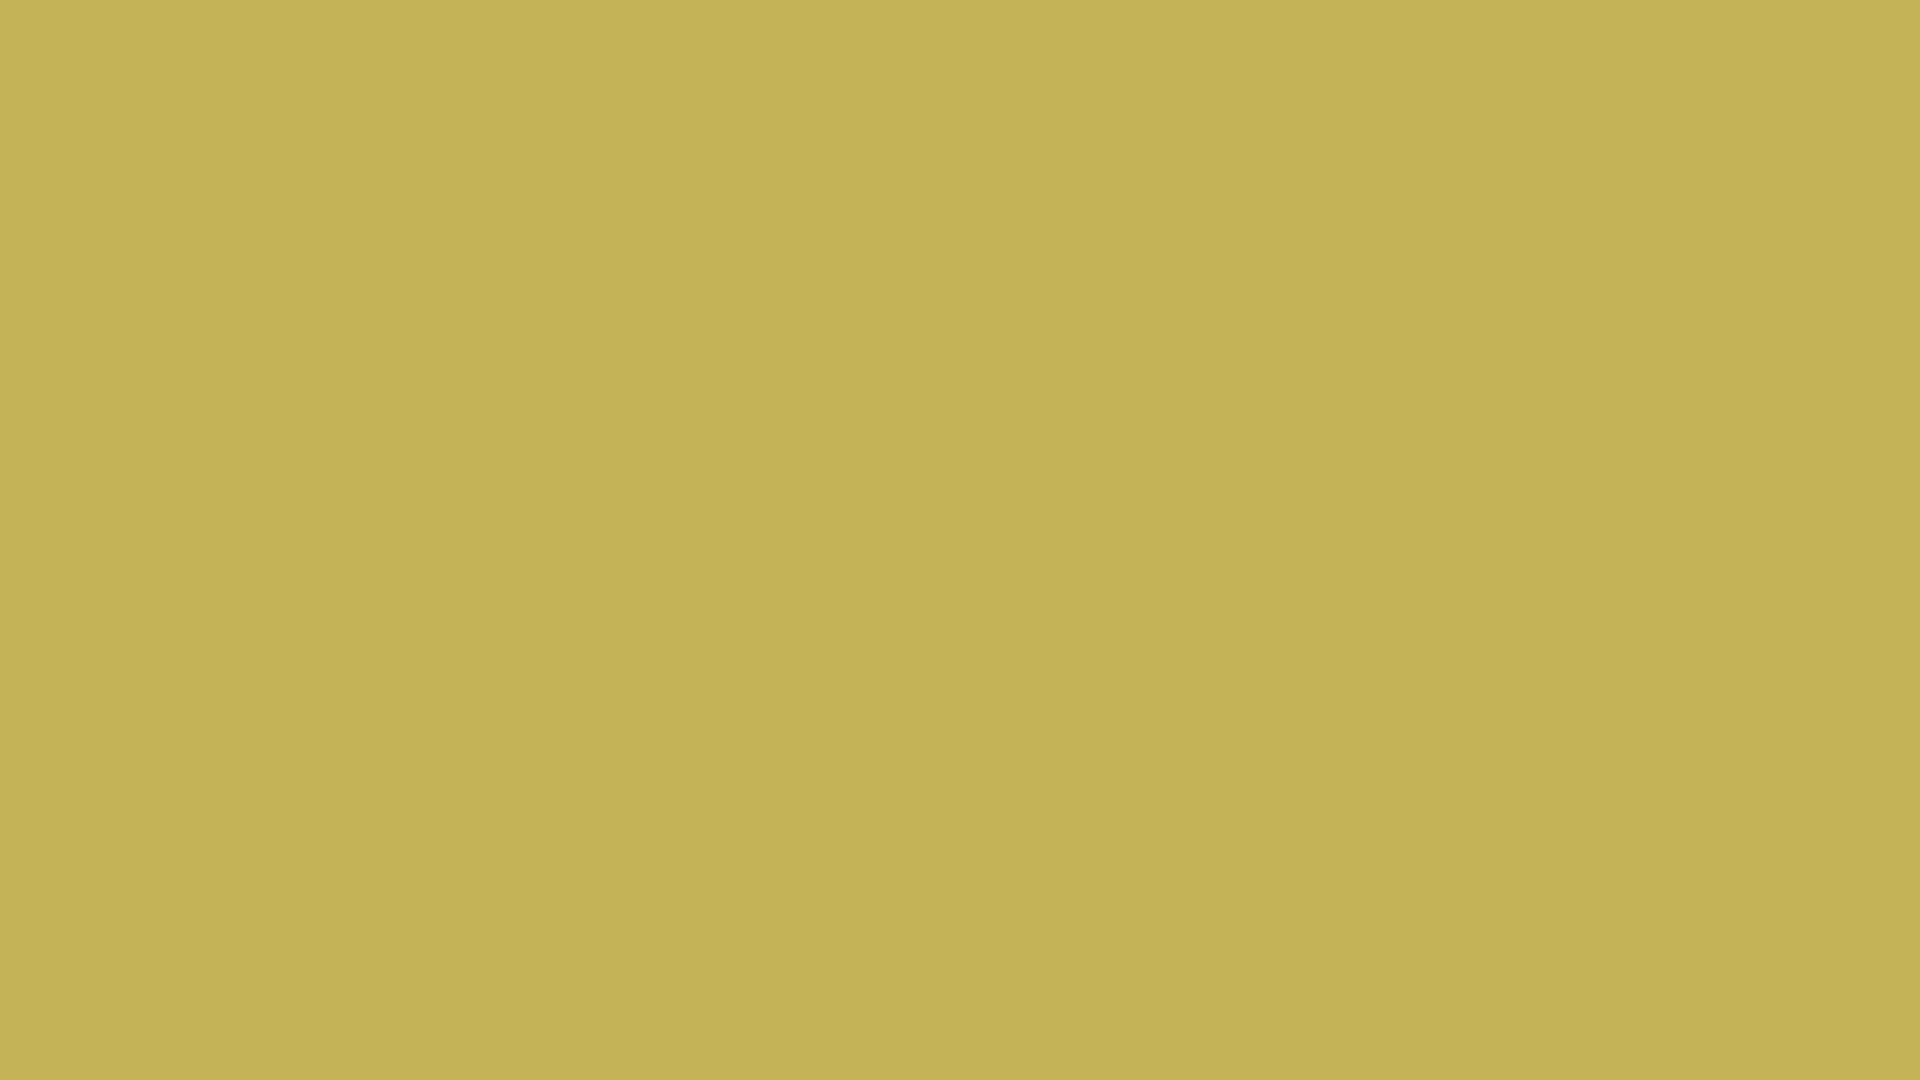 1920x1080 Vegas Gold Solid Color Background